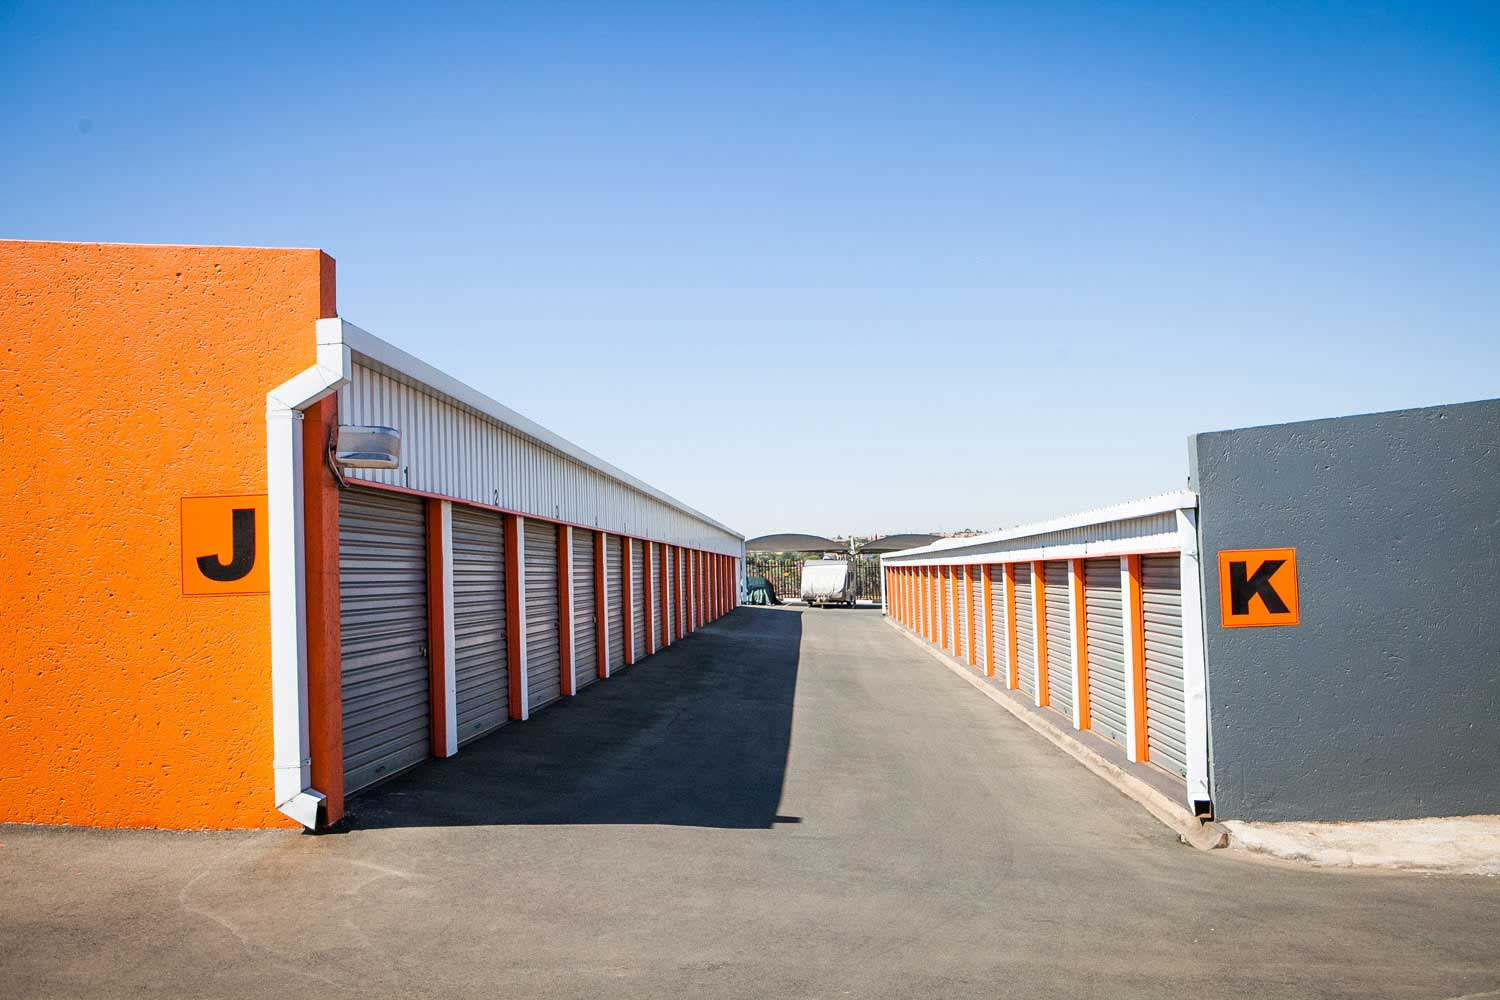 Self storage units at XtraSpace Edenvale South